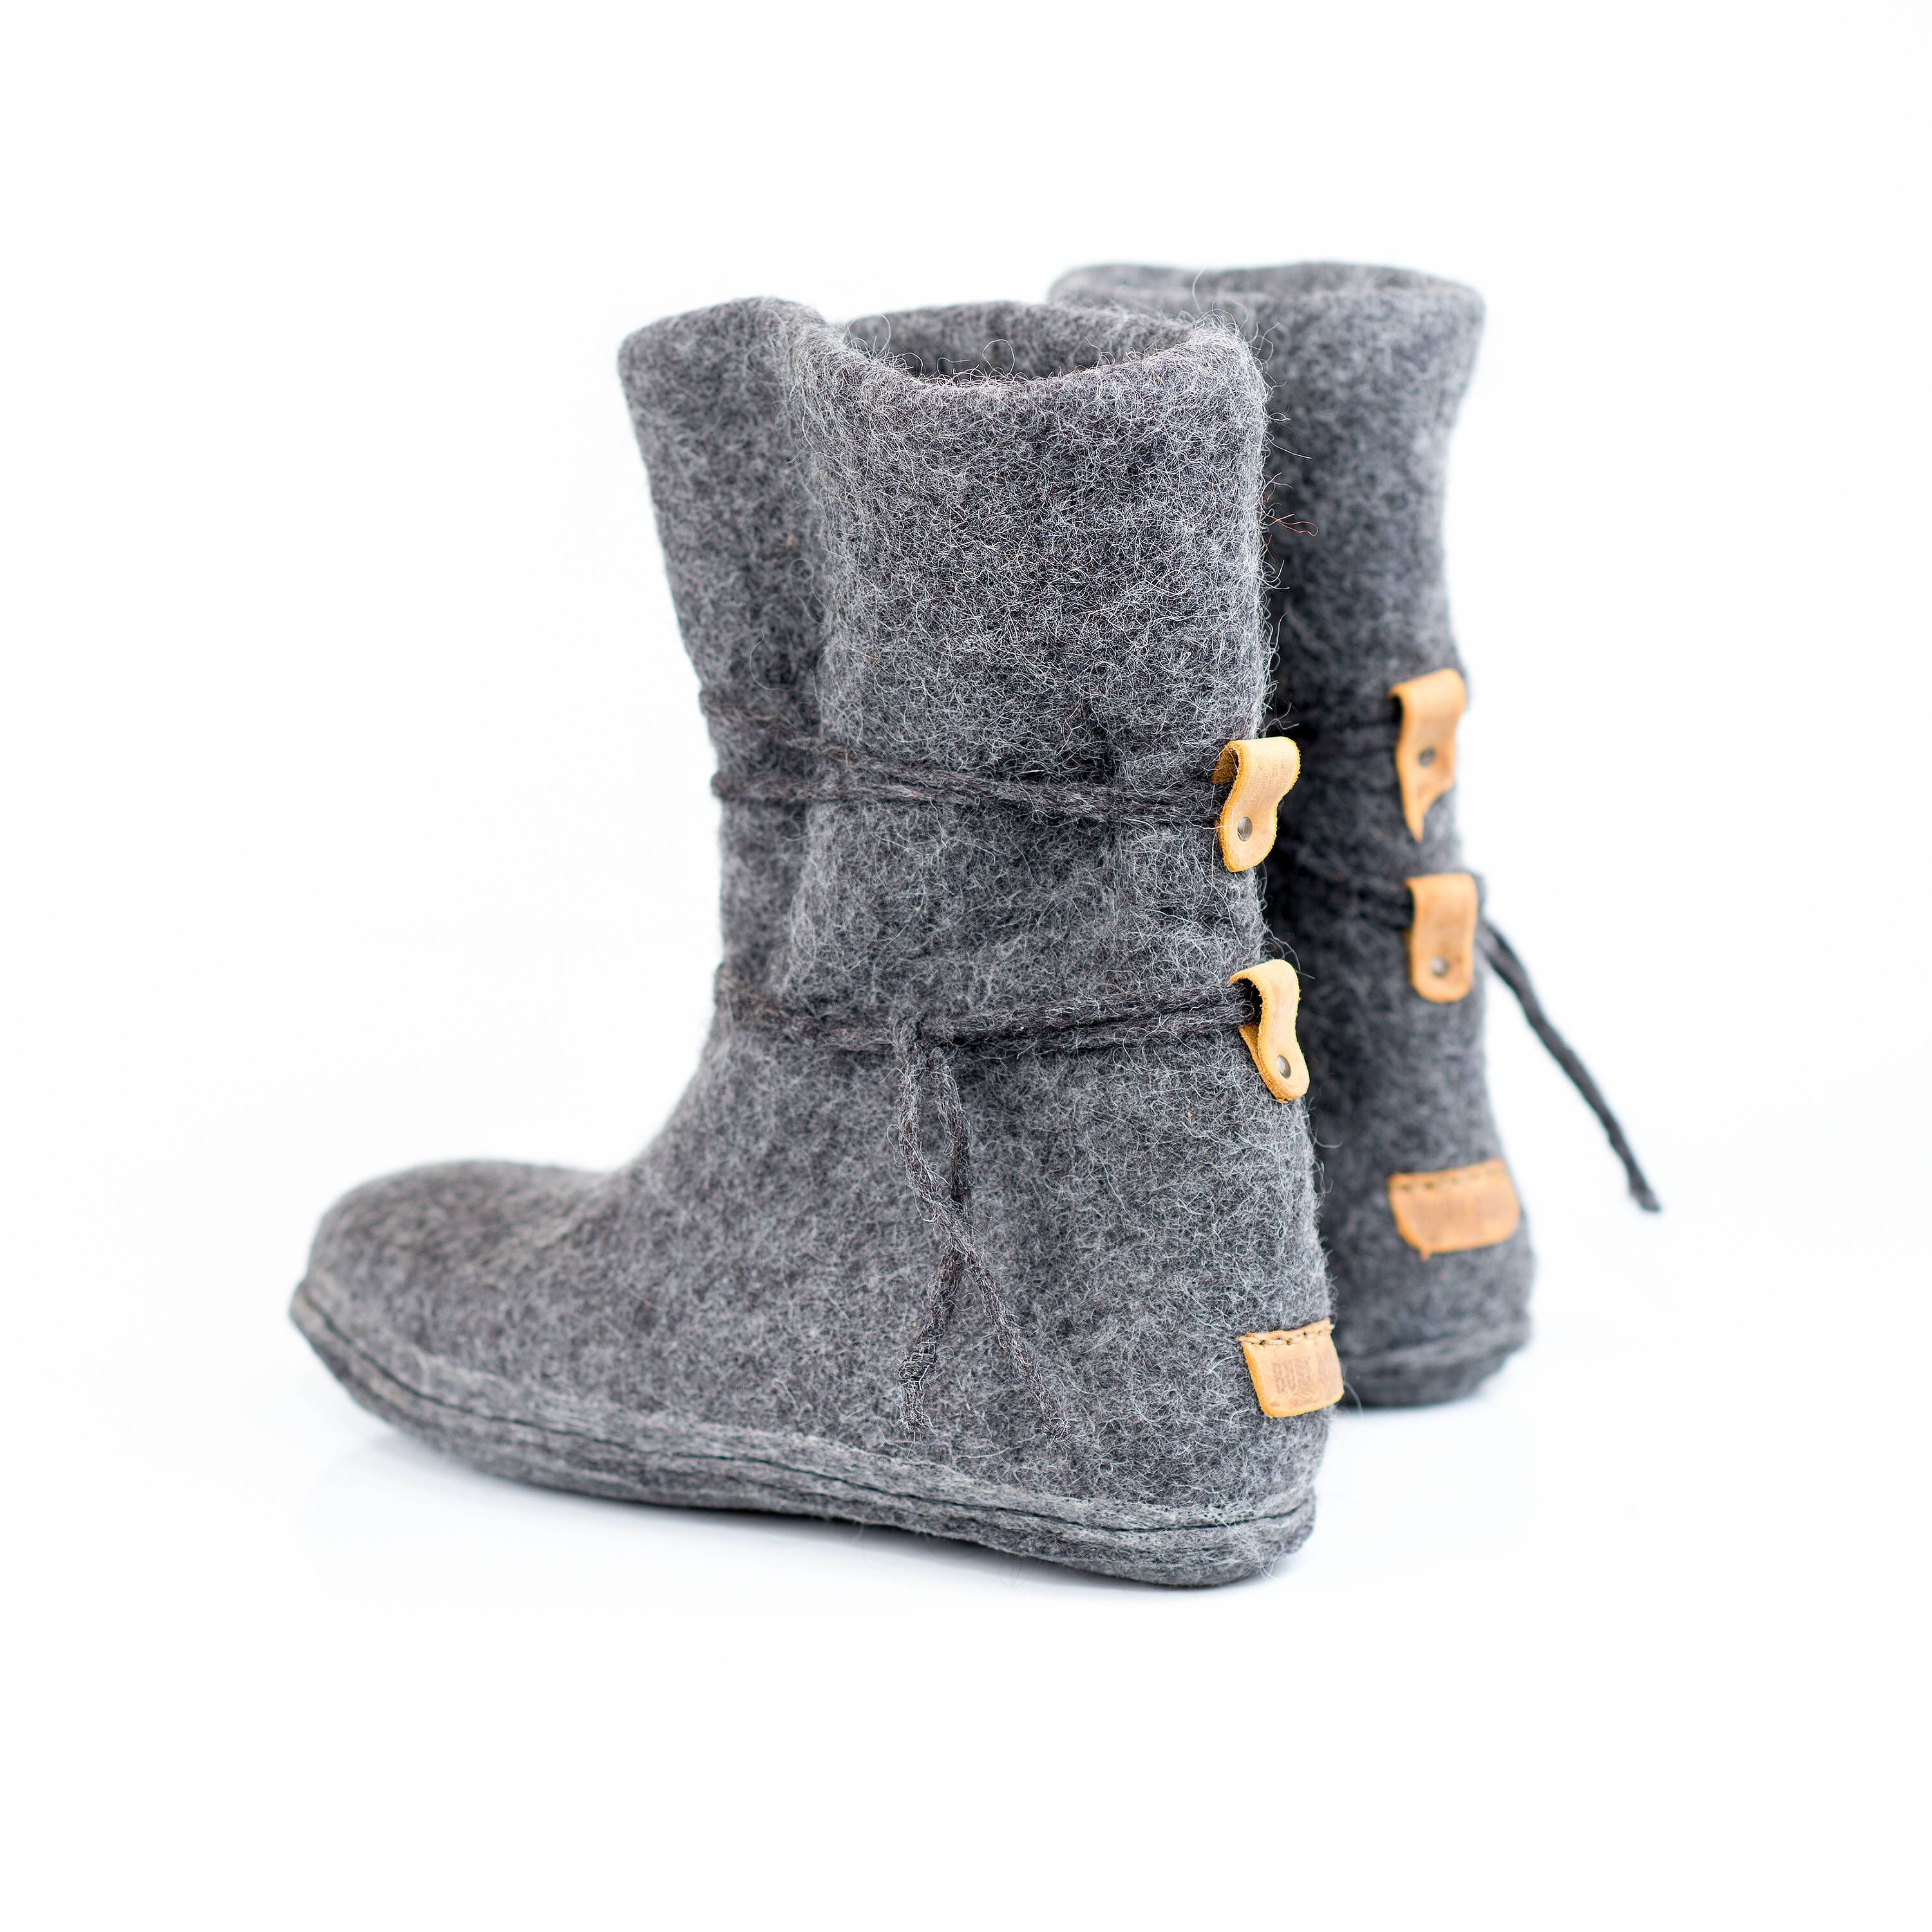 a6fad3ccbb030 Extra warm gray winter boots with laces, Women felted wool boots ...